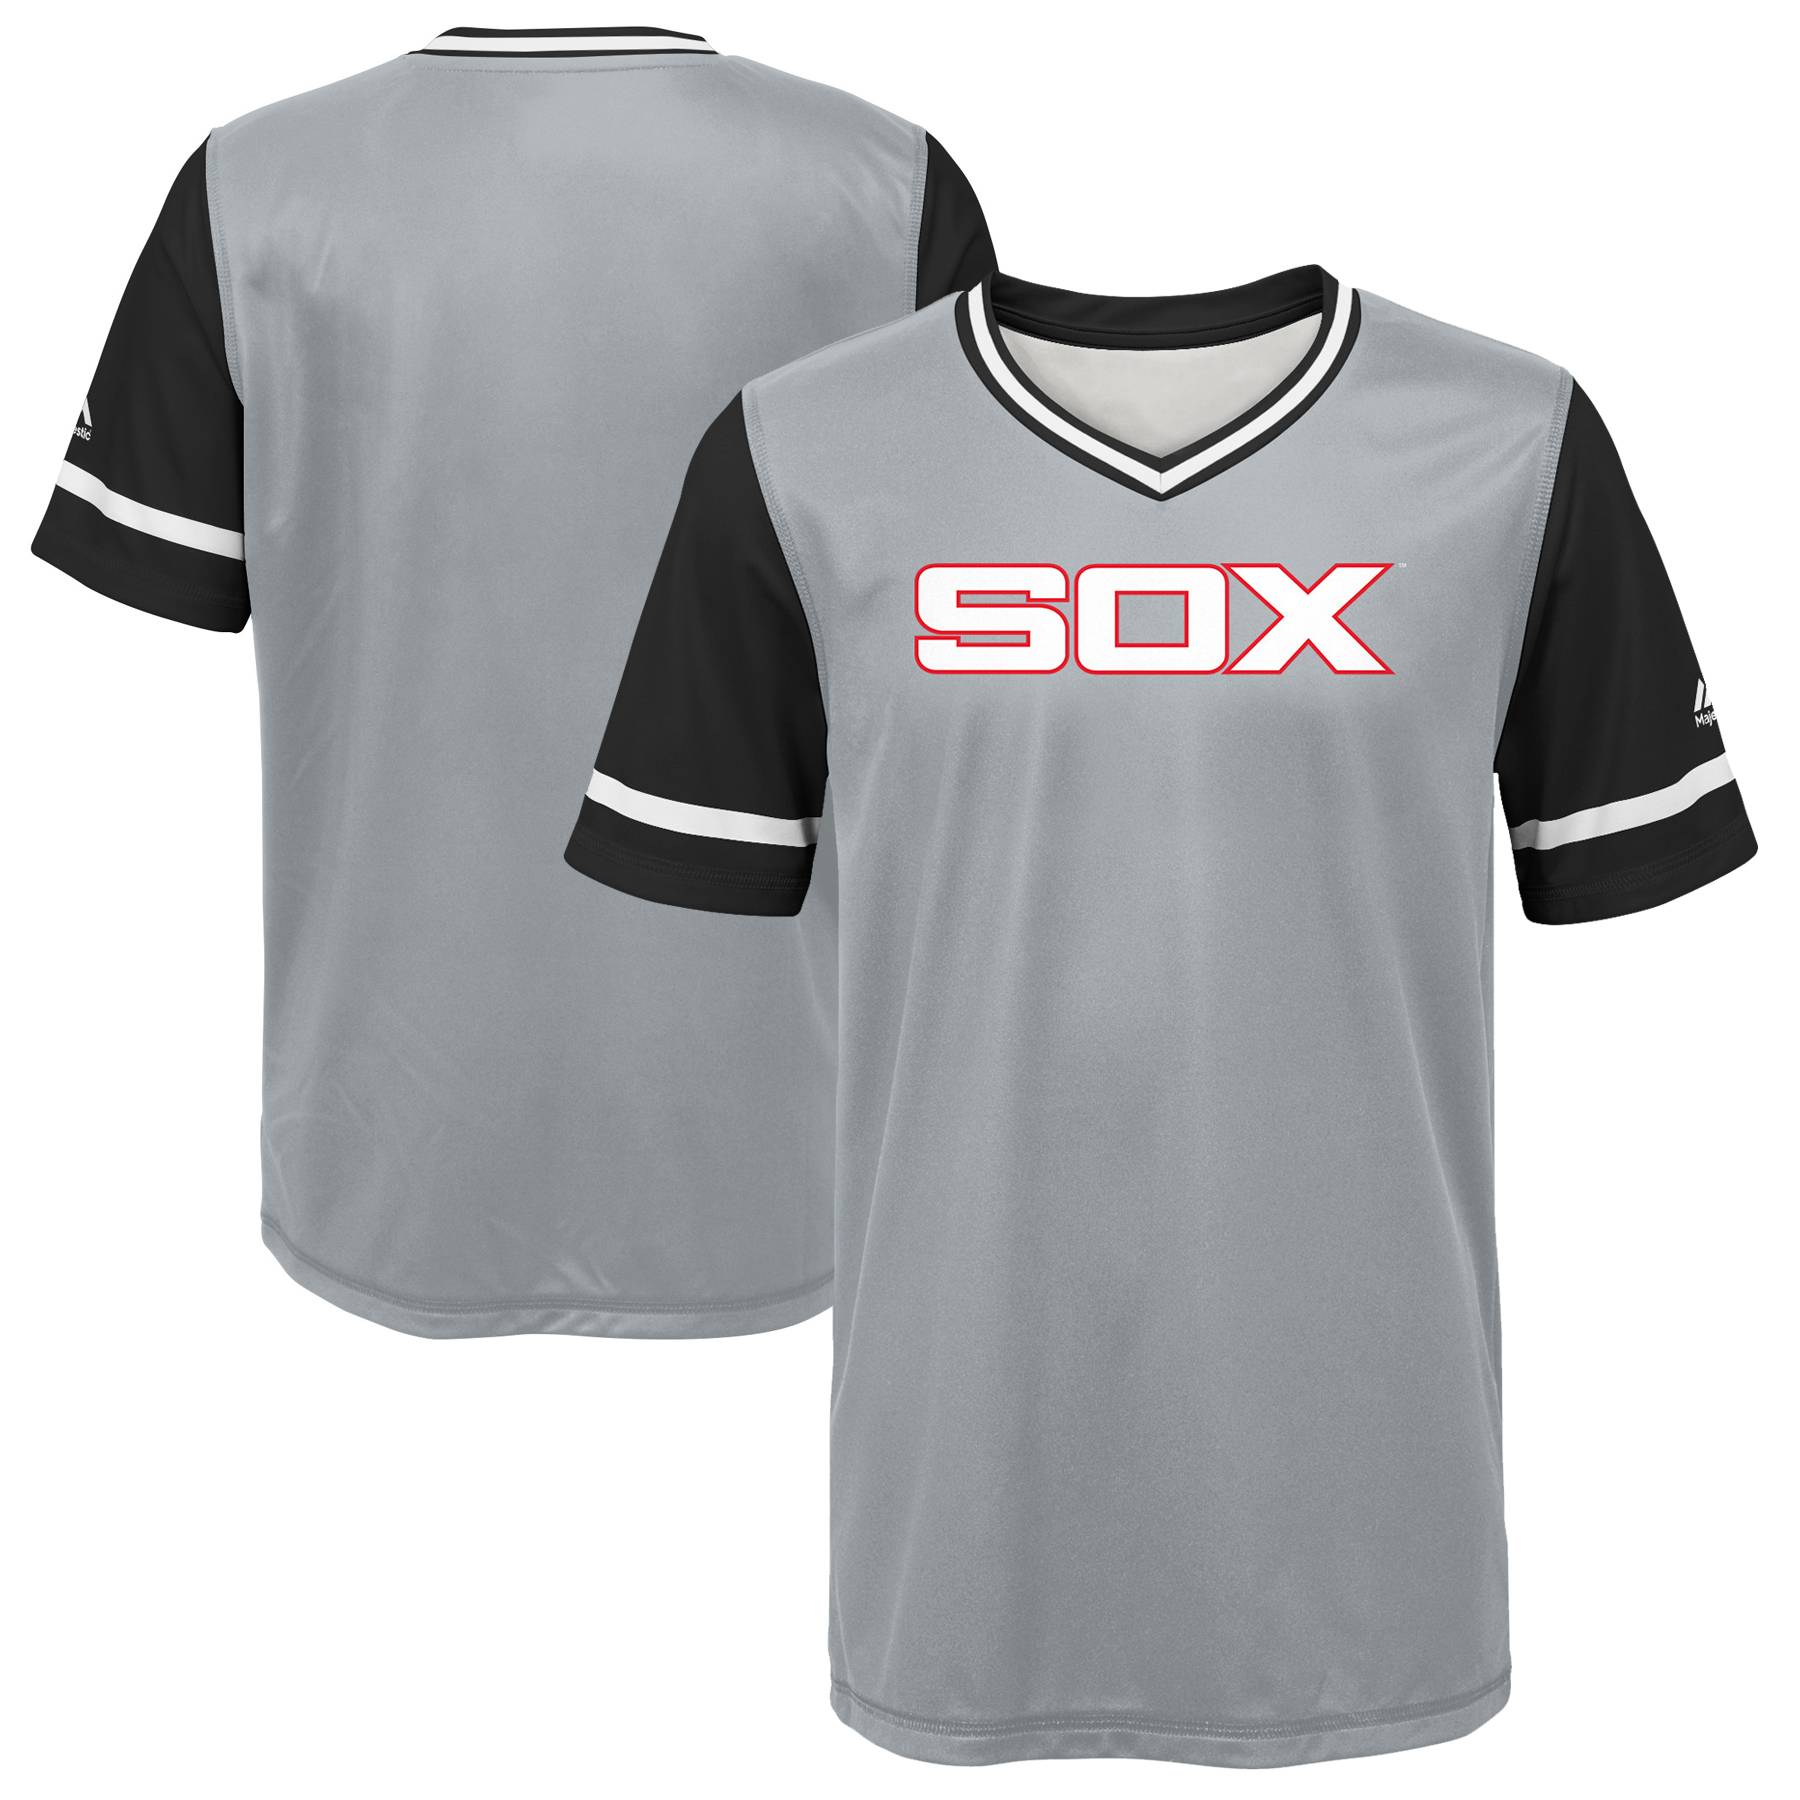 Chicago White Sox Majestic Youth 2018 Players' Weekend Team Jersey - Gray/Black